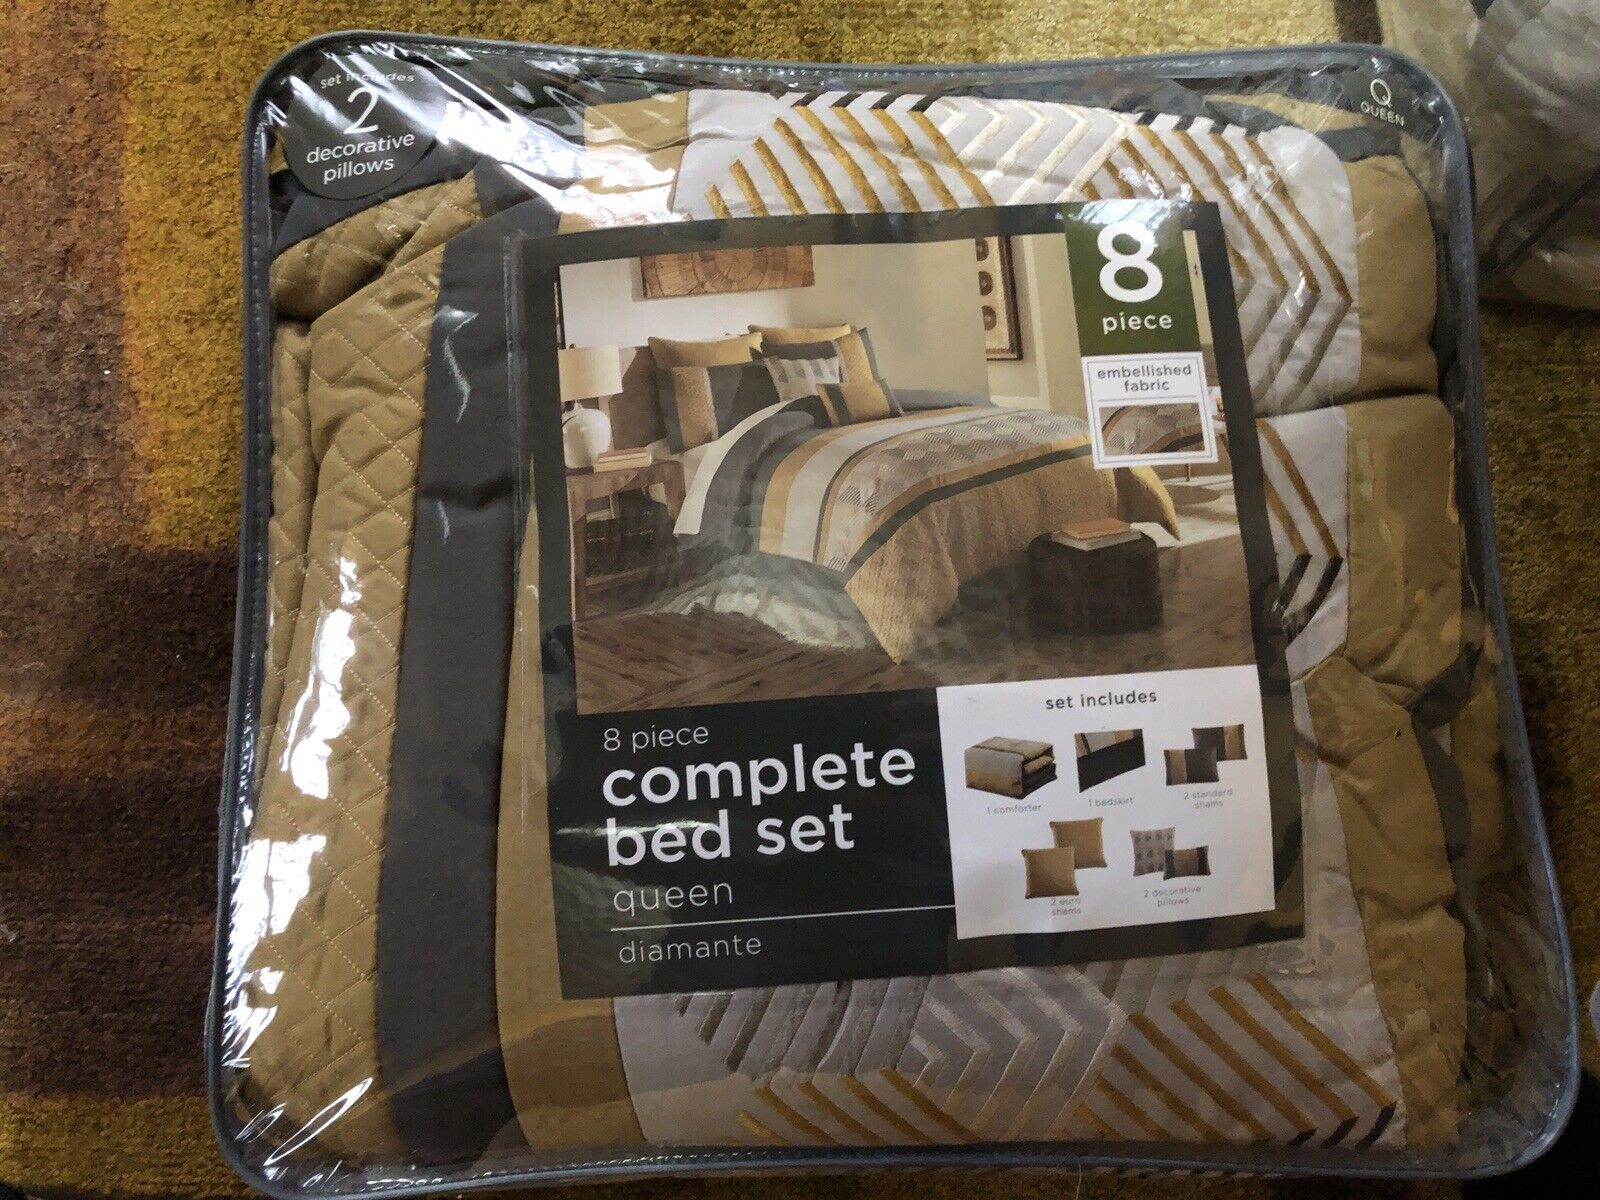 8 Piece Queen Bed Set Diamanté